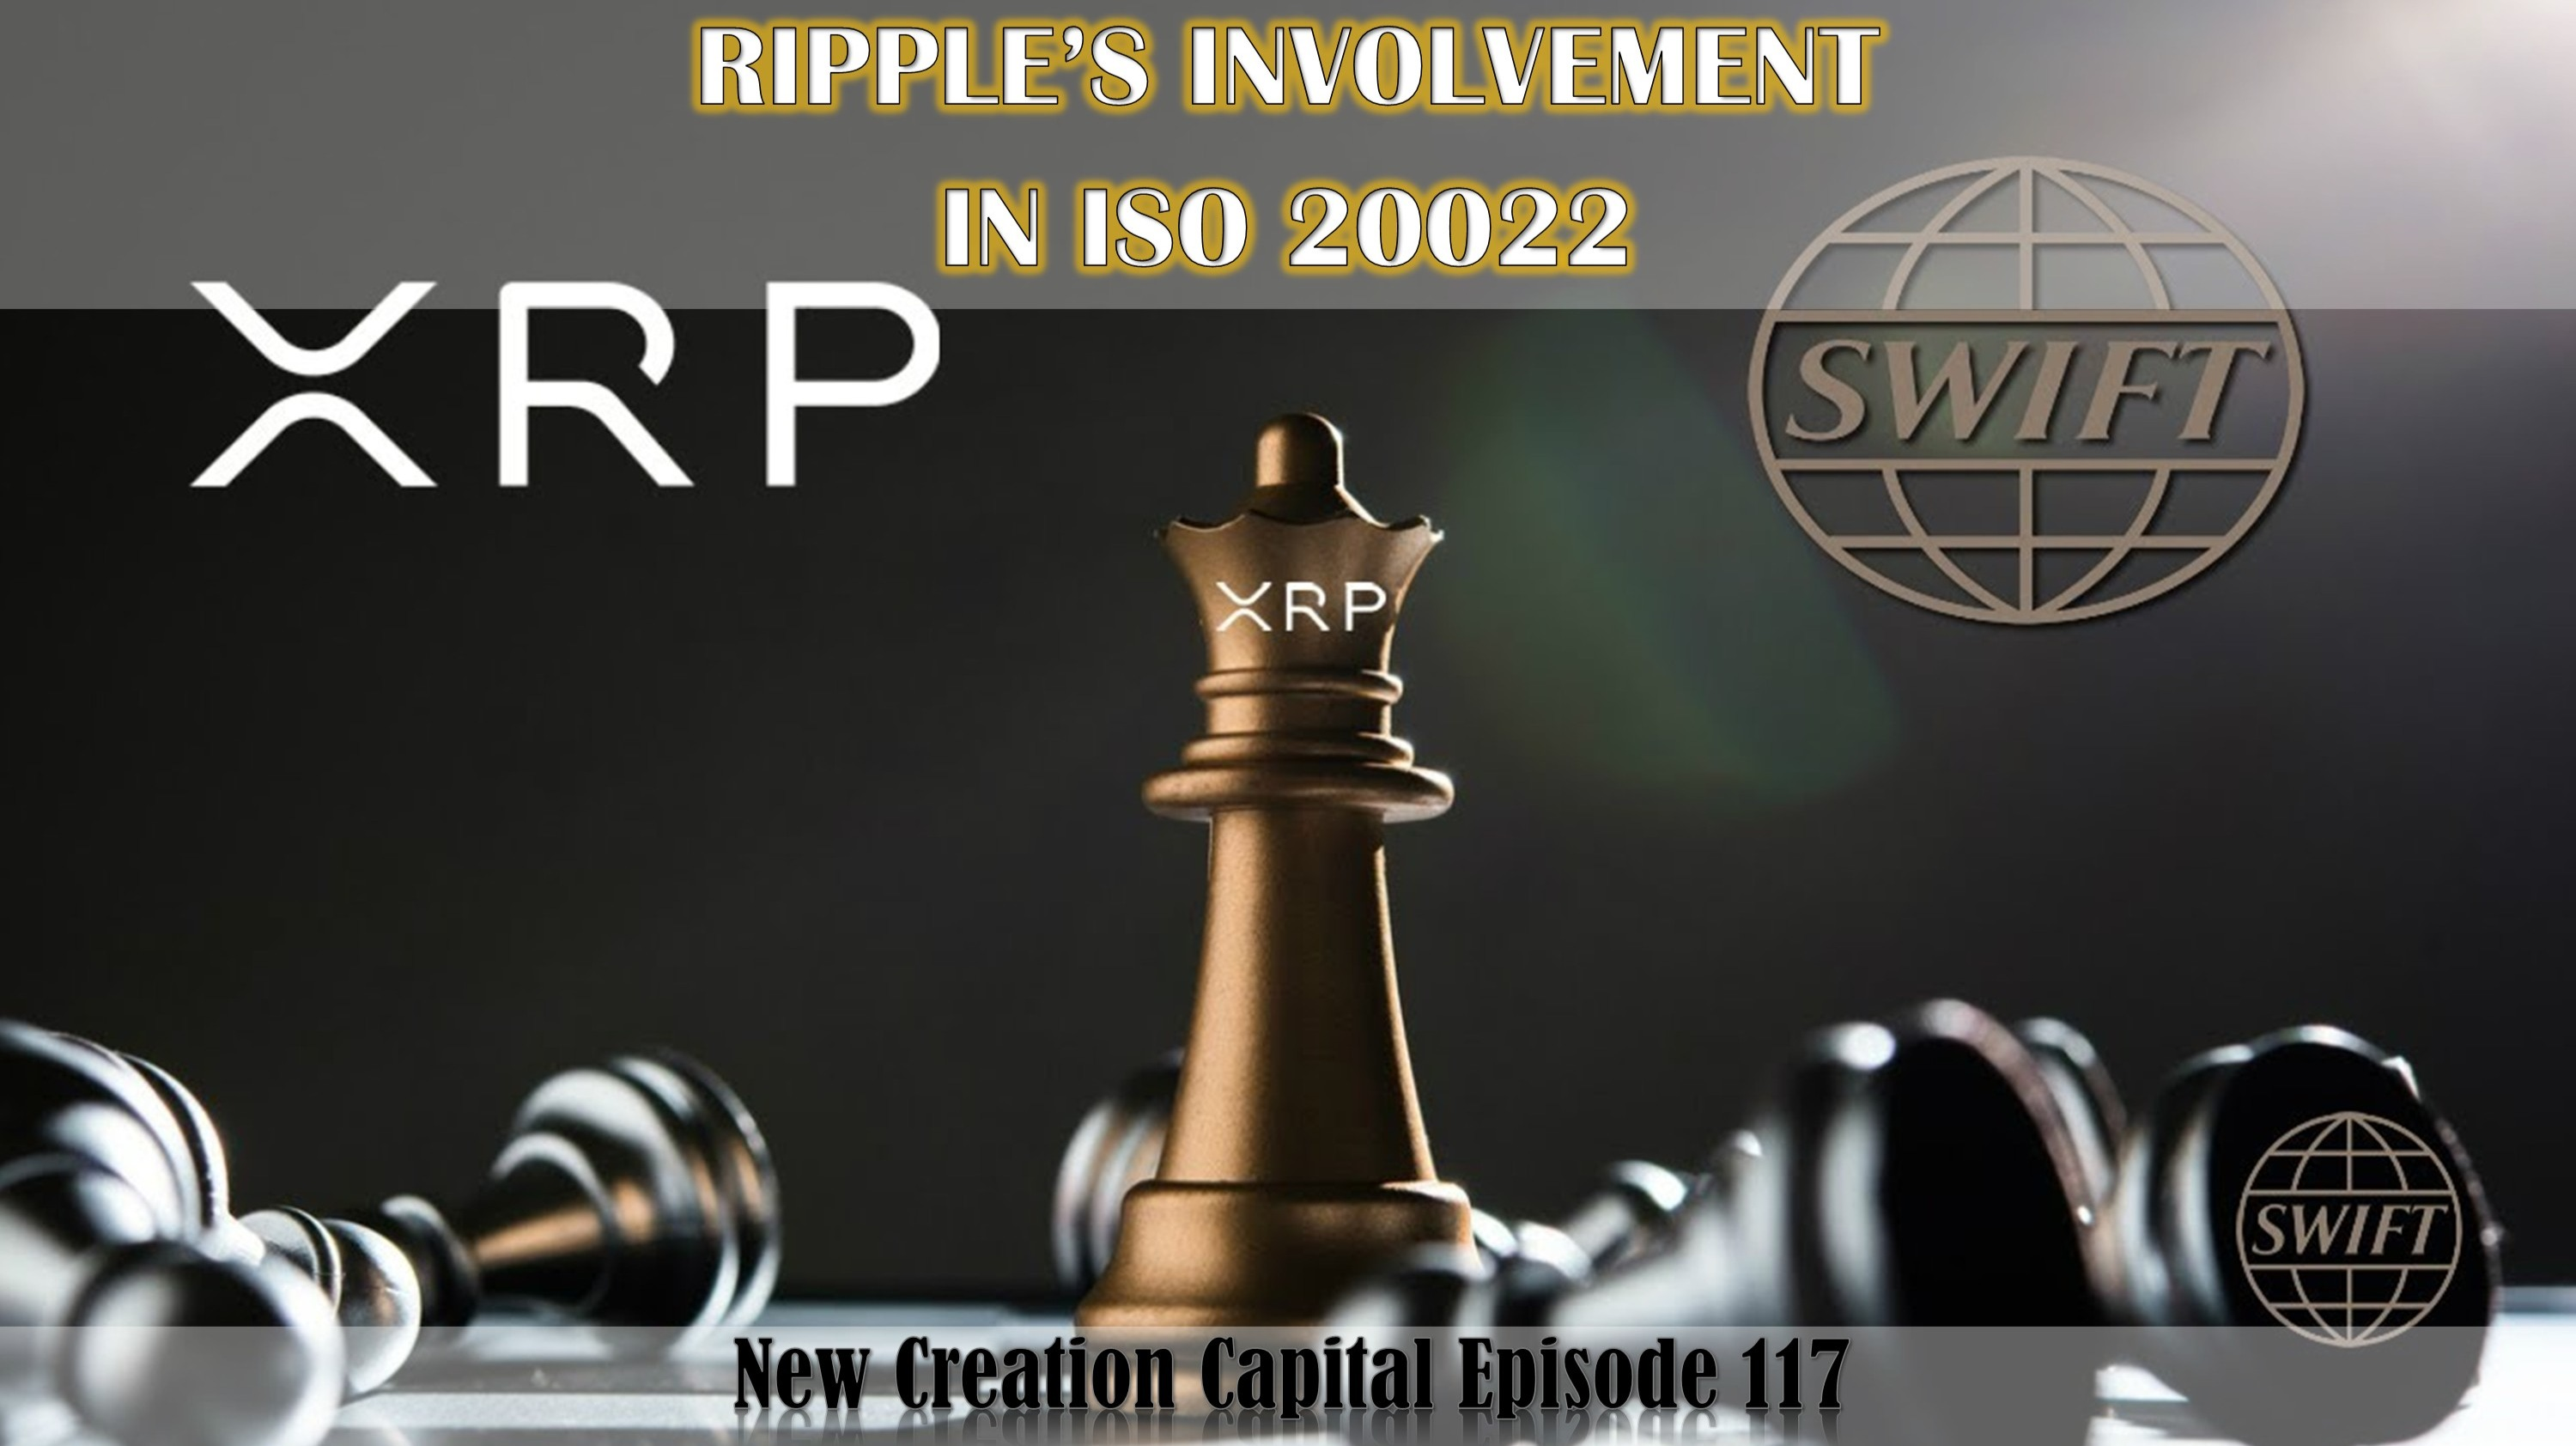 Ripple's involvement in ISO 20022: A step towards wider acceptance in the banking industry?